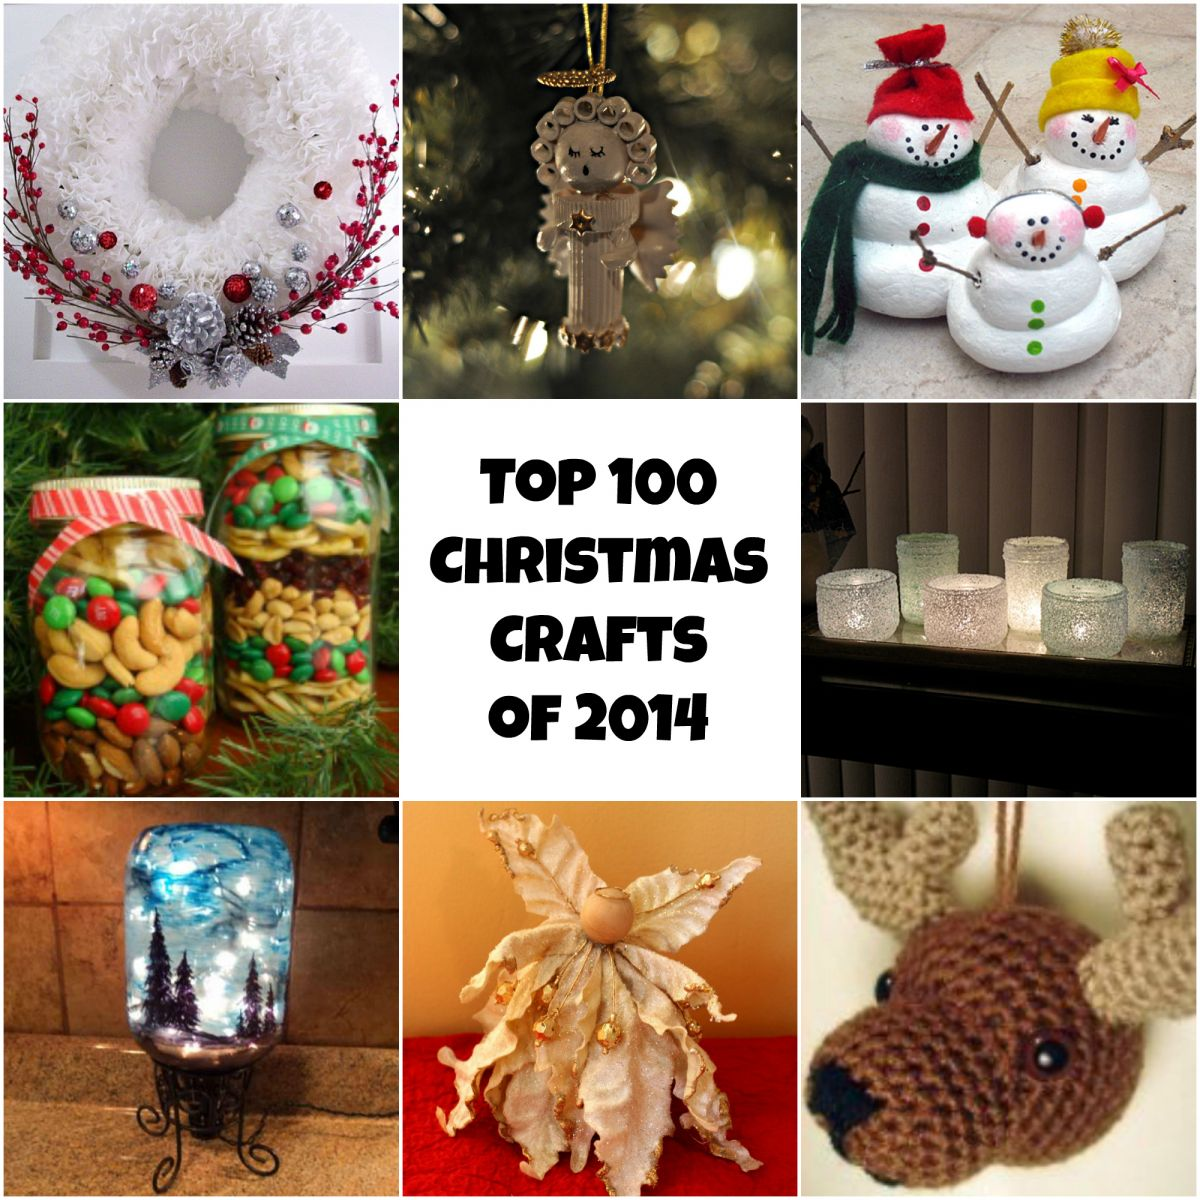 Top 100 diy christmas crafts of 2014 homemade christmas ornaments top 100 diy christmas crafts of 2013 diy christmas ornaments homemade christmas decorations solutioingenieria